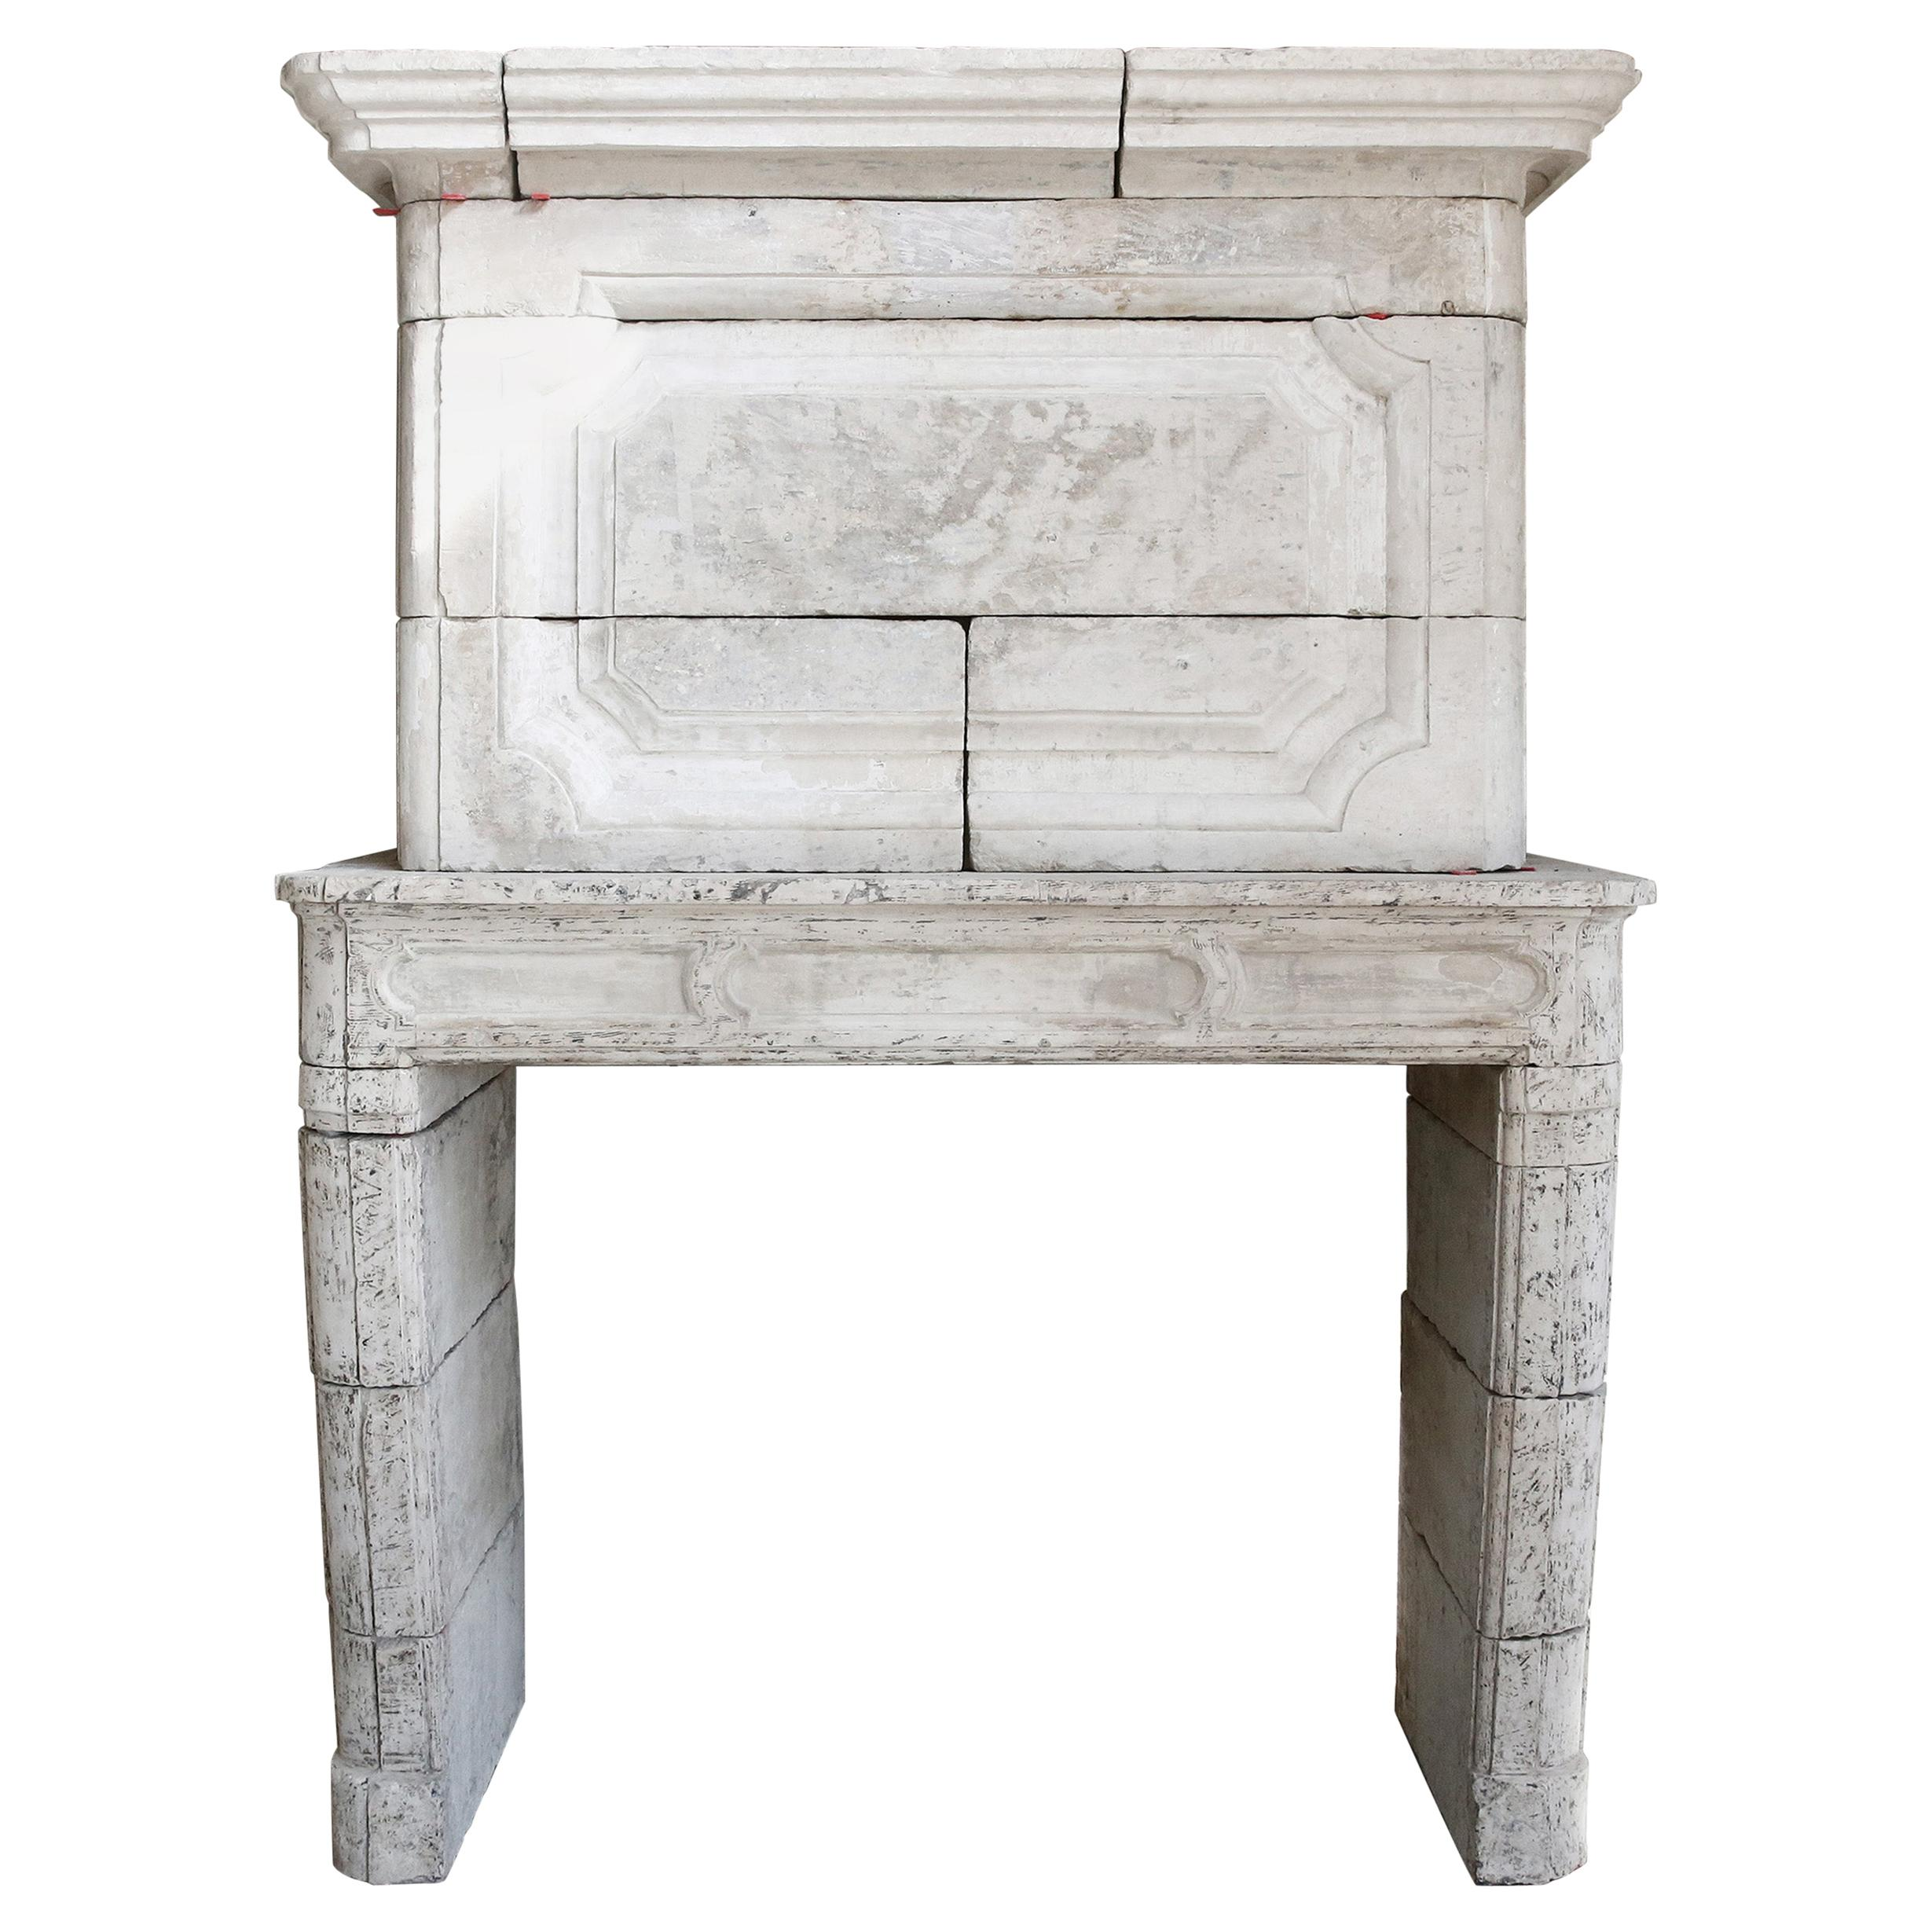 18th Century Mantel Surround of French Limestone with a Trumeau